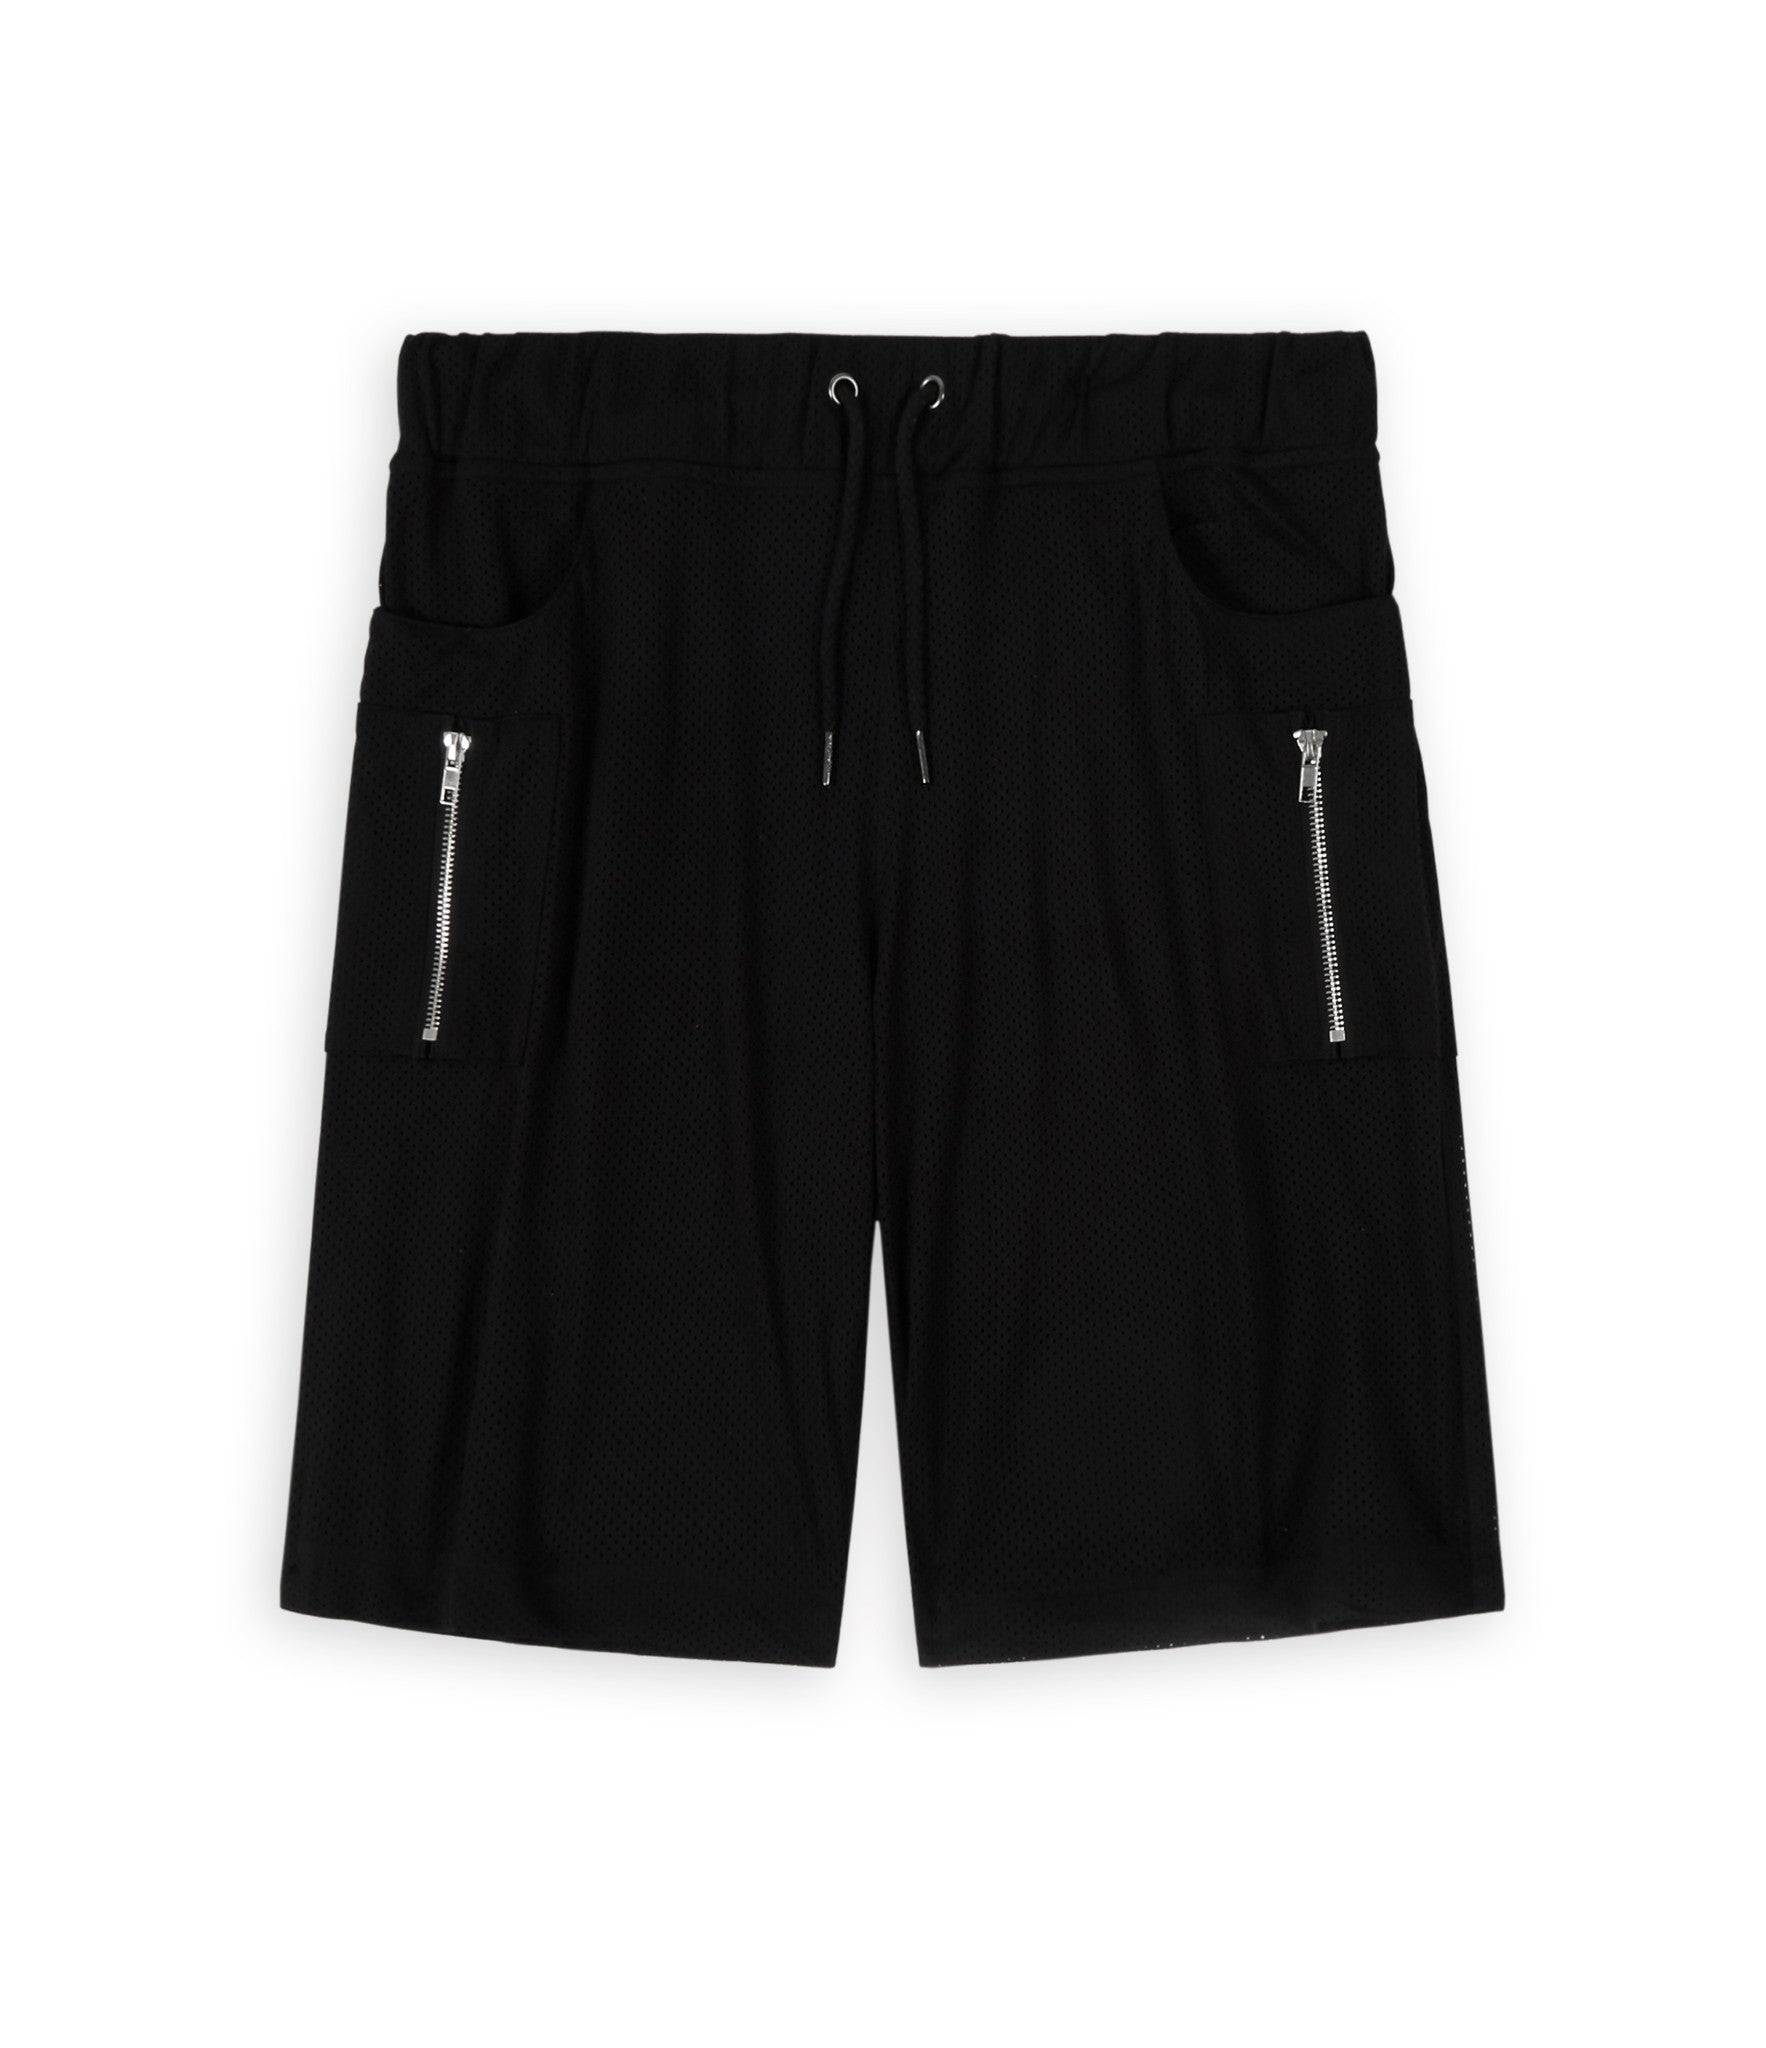 SR283 Utility Airtex Shorts - Black - underated london - underatedco - 2